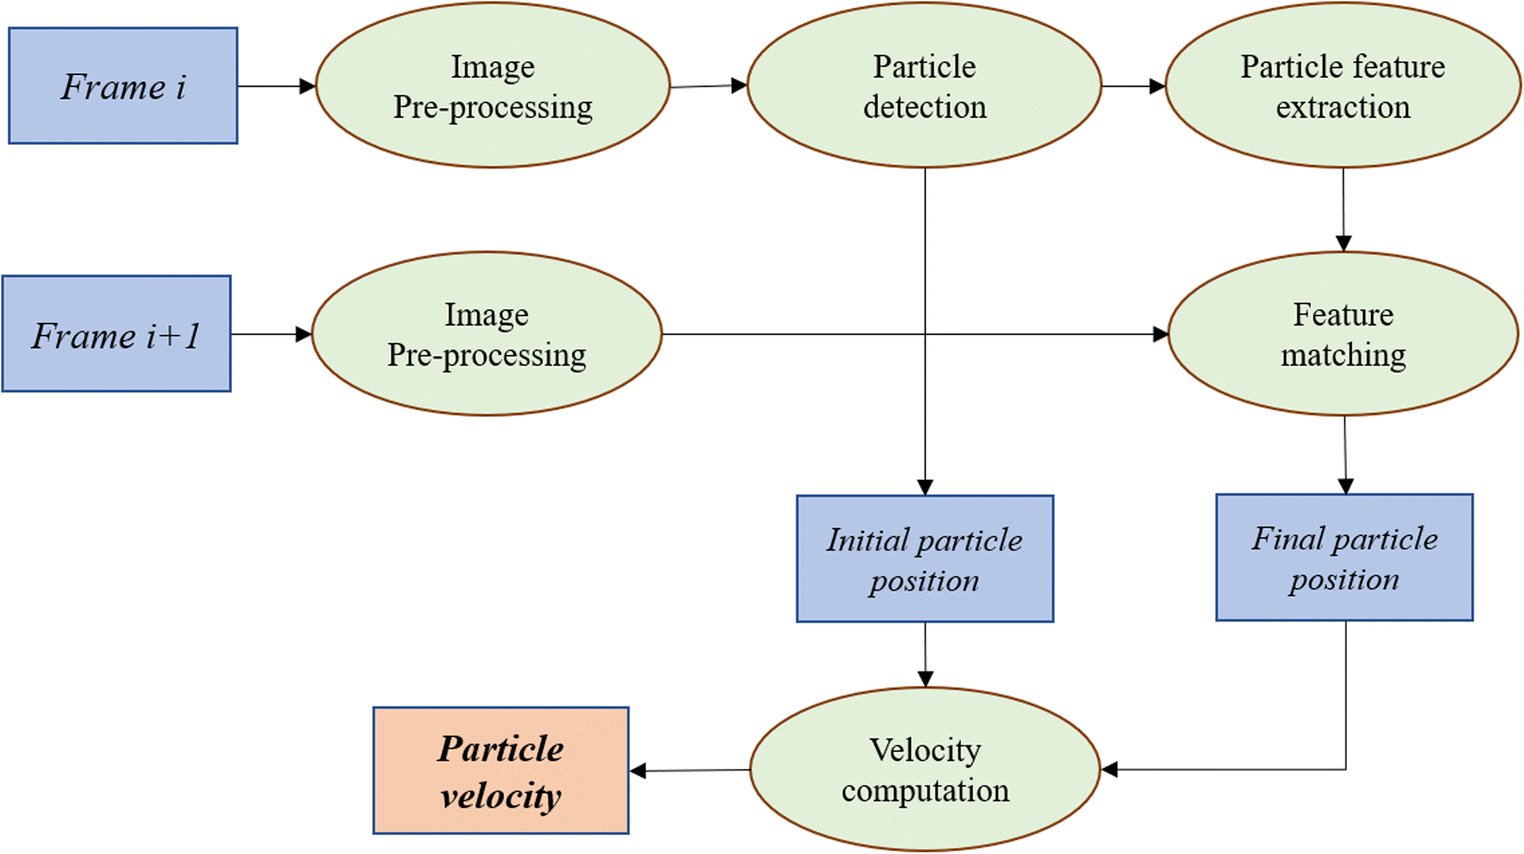 Experimental Apparatus, Analyses and Comparisons of the Feature